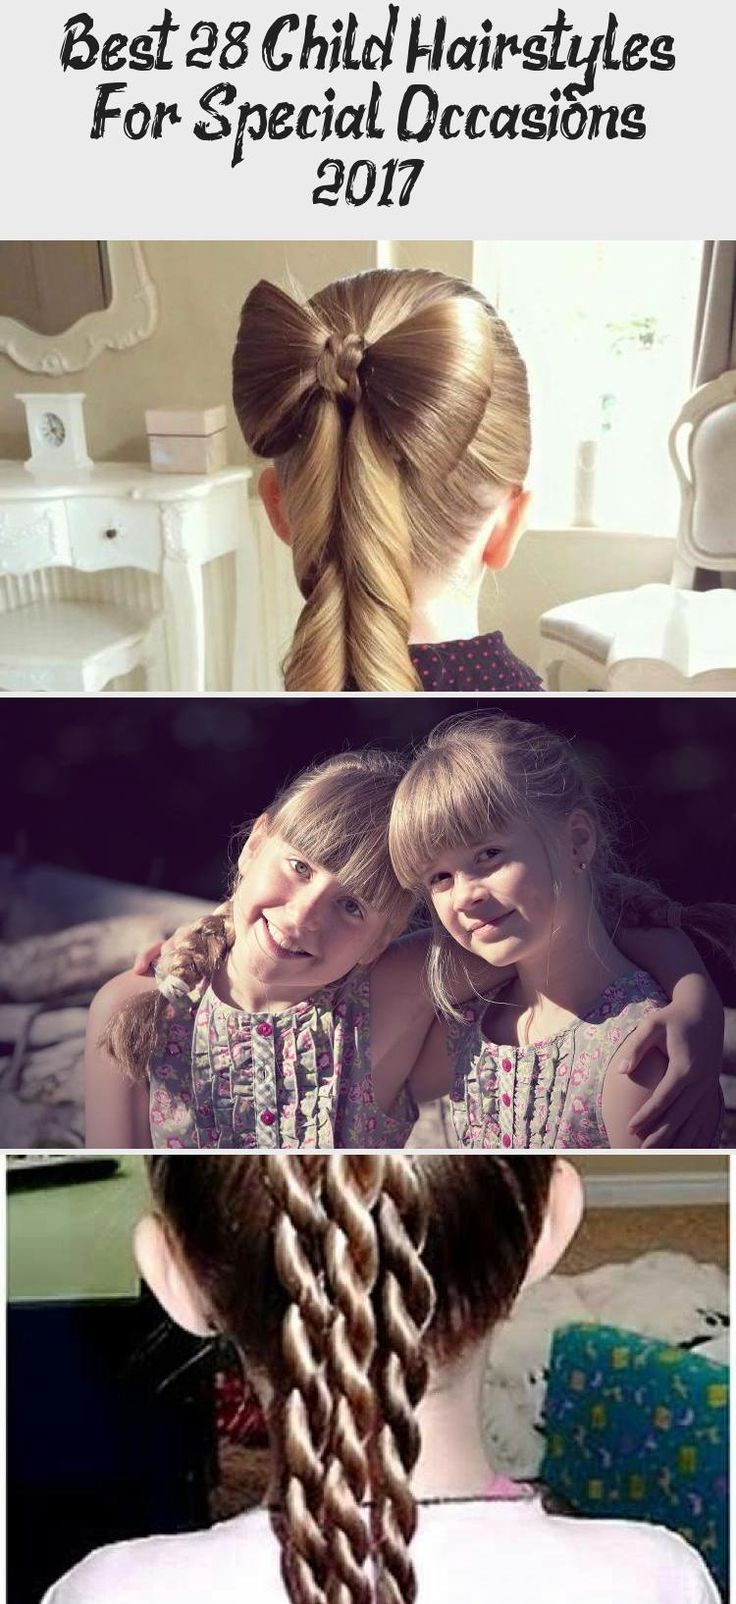 Best 28 child Hairstyles for Special occasions 2017 #babyhairstylesAfricanAmerican #babyhairstylesShortHair #babyhairstylesDIY #babyhairstylesVideos #babyhairstylesMen